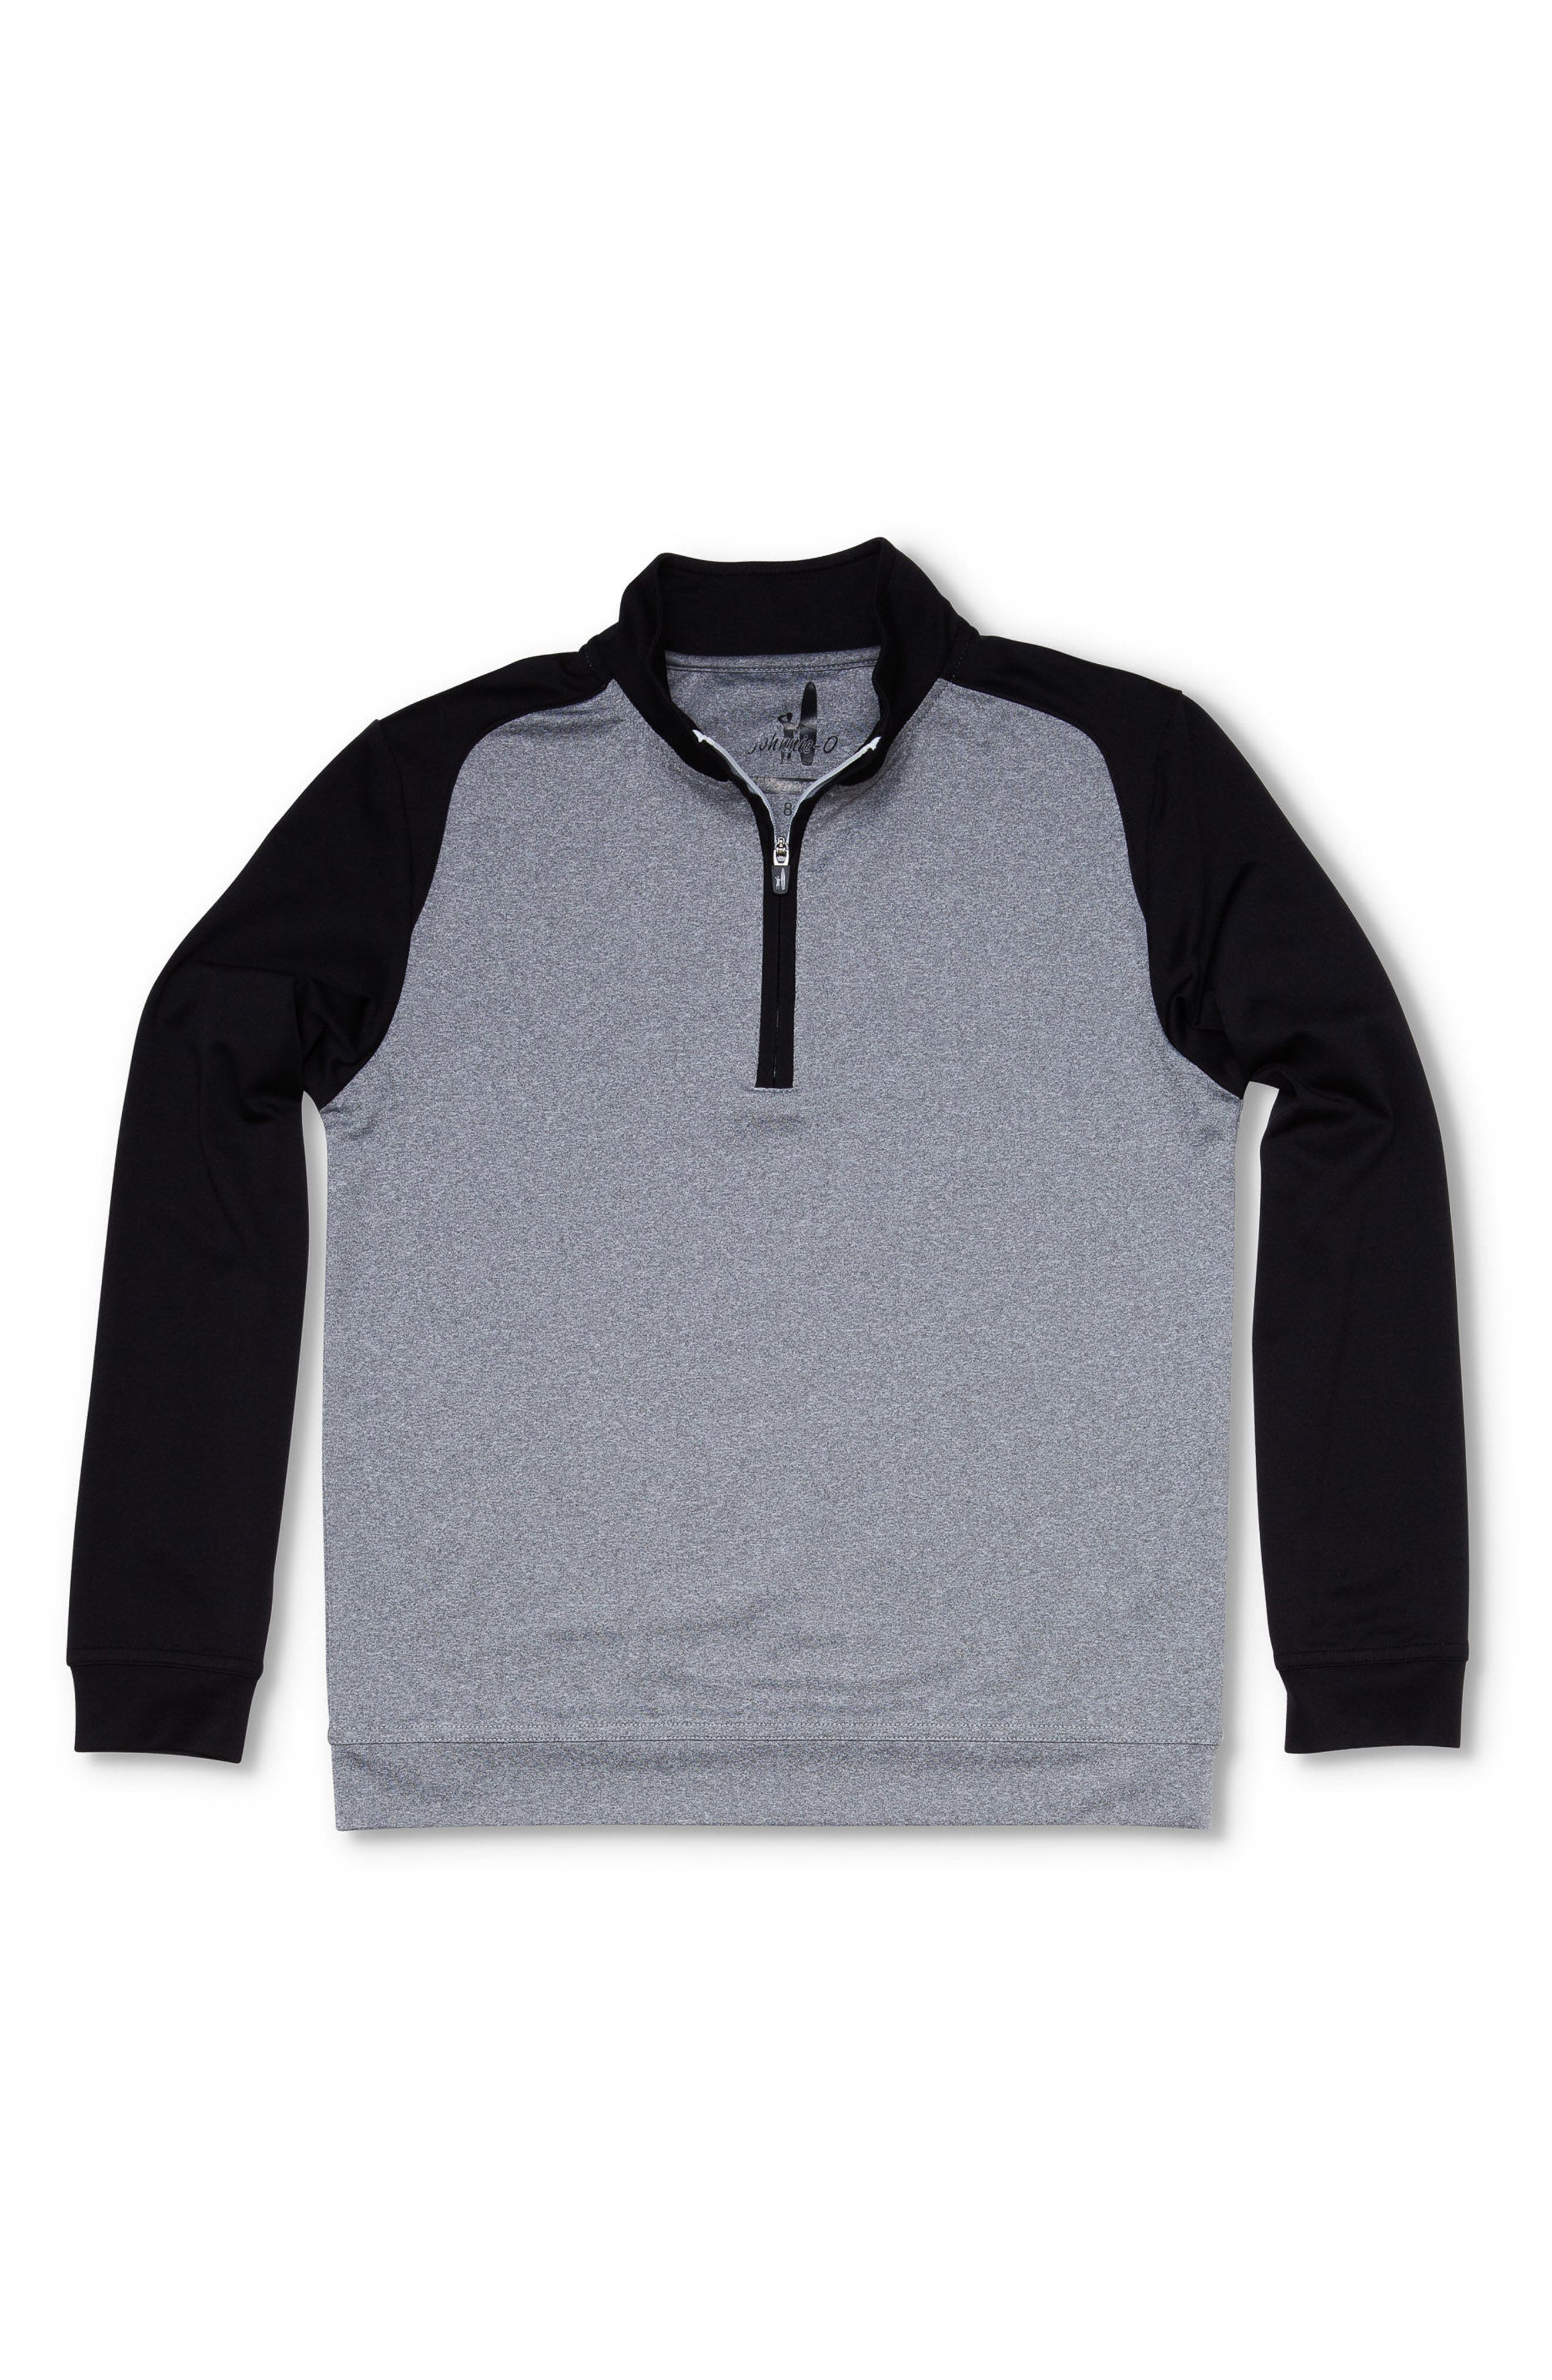 Sway Quarter Zip Pullover,                             Main thumbnail 1, color,                             021